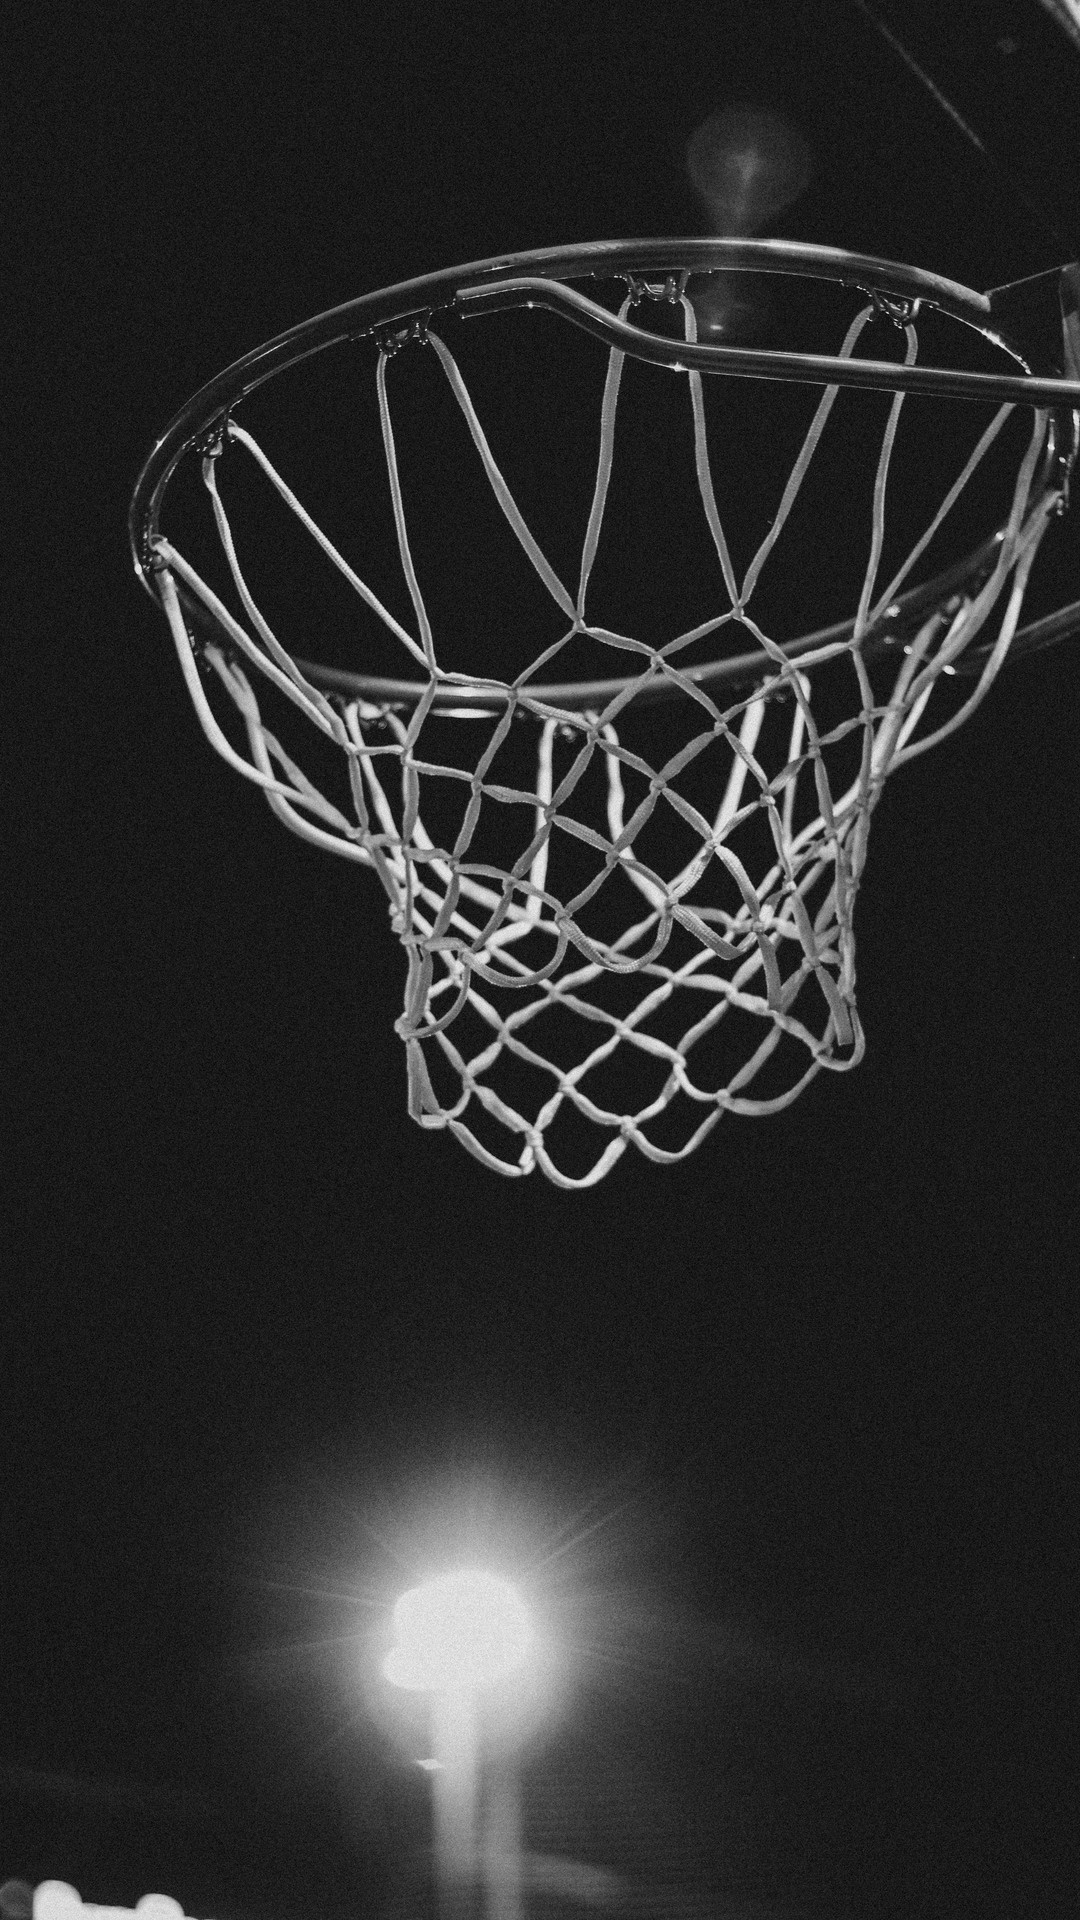 Basketball Iphone Wallpapers 23 Images Wallpaperboat